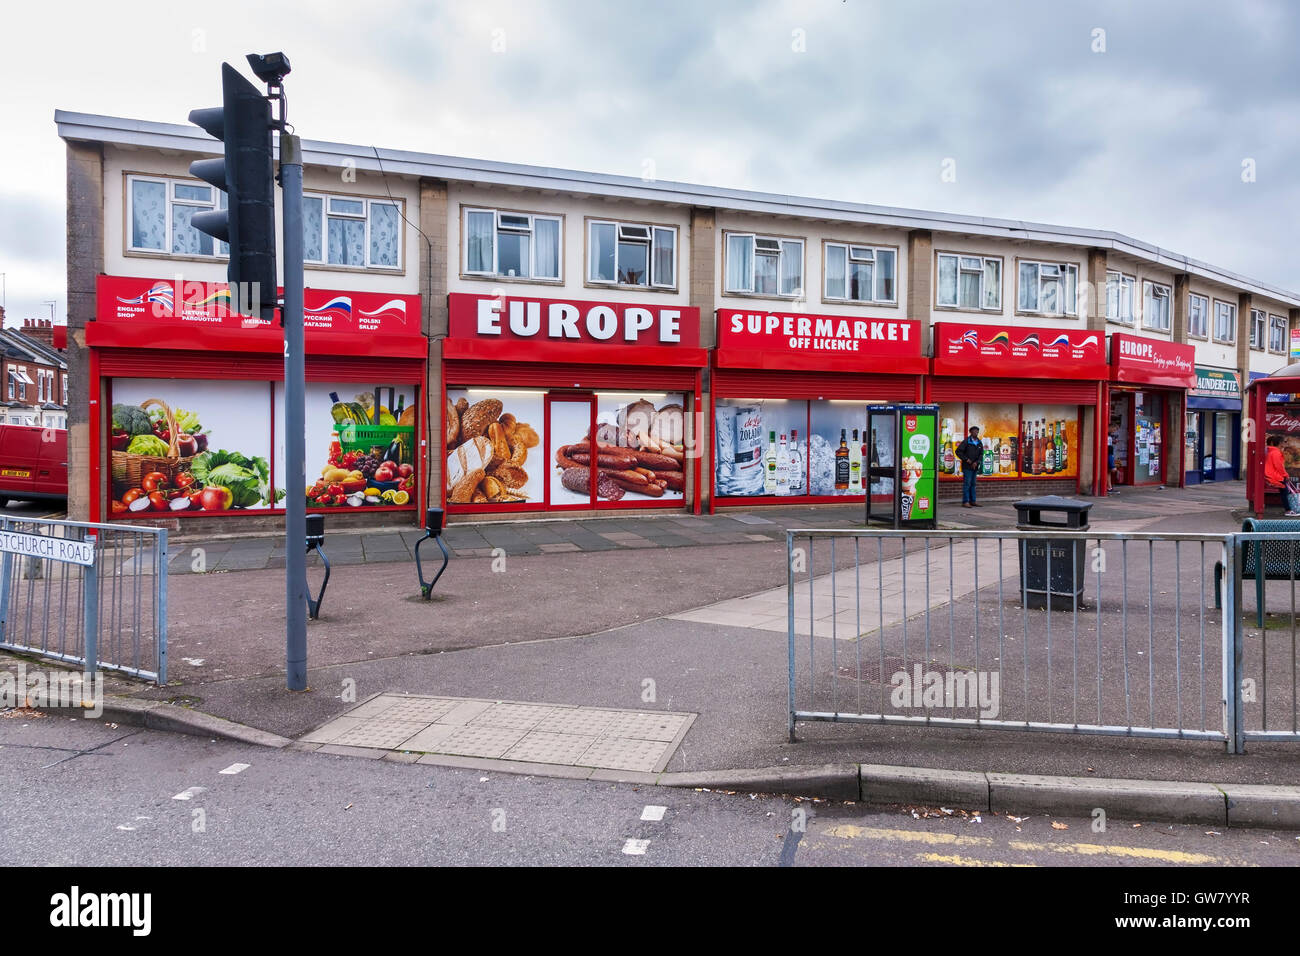 Europe supermarket and off license on the corner of Wellingborough and Christchurch road Northampton. - Stock Image